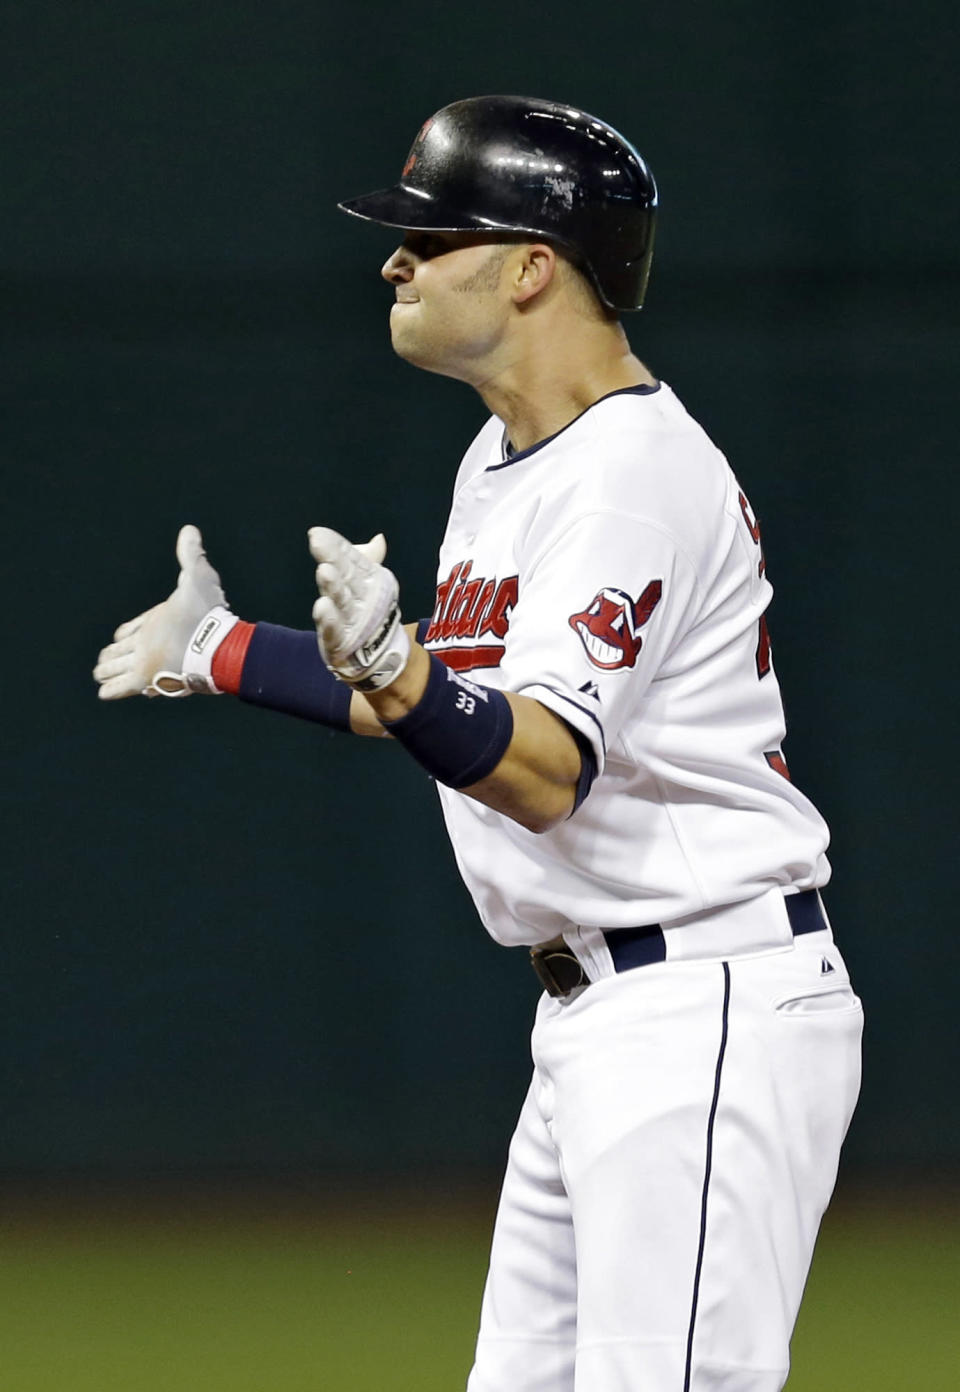 Cleveland Indians' Nick Swisher celebrates at second base after an RBI double in the seventh inning of a baseball game against the Detroit Tigers on Wednesday, Aug. 7, 2013, in Cleveland. (AP Photo/Mark Duncan)